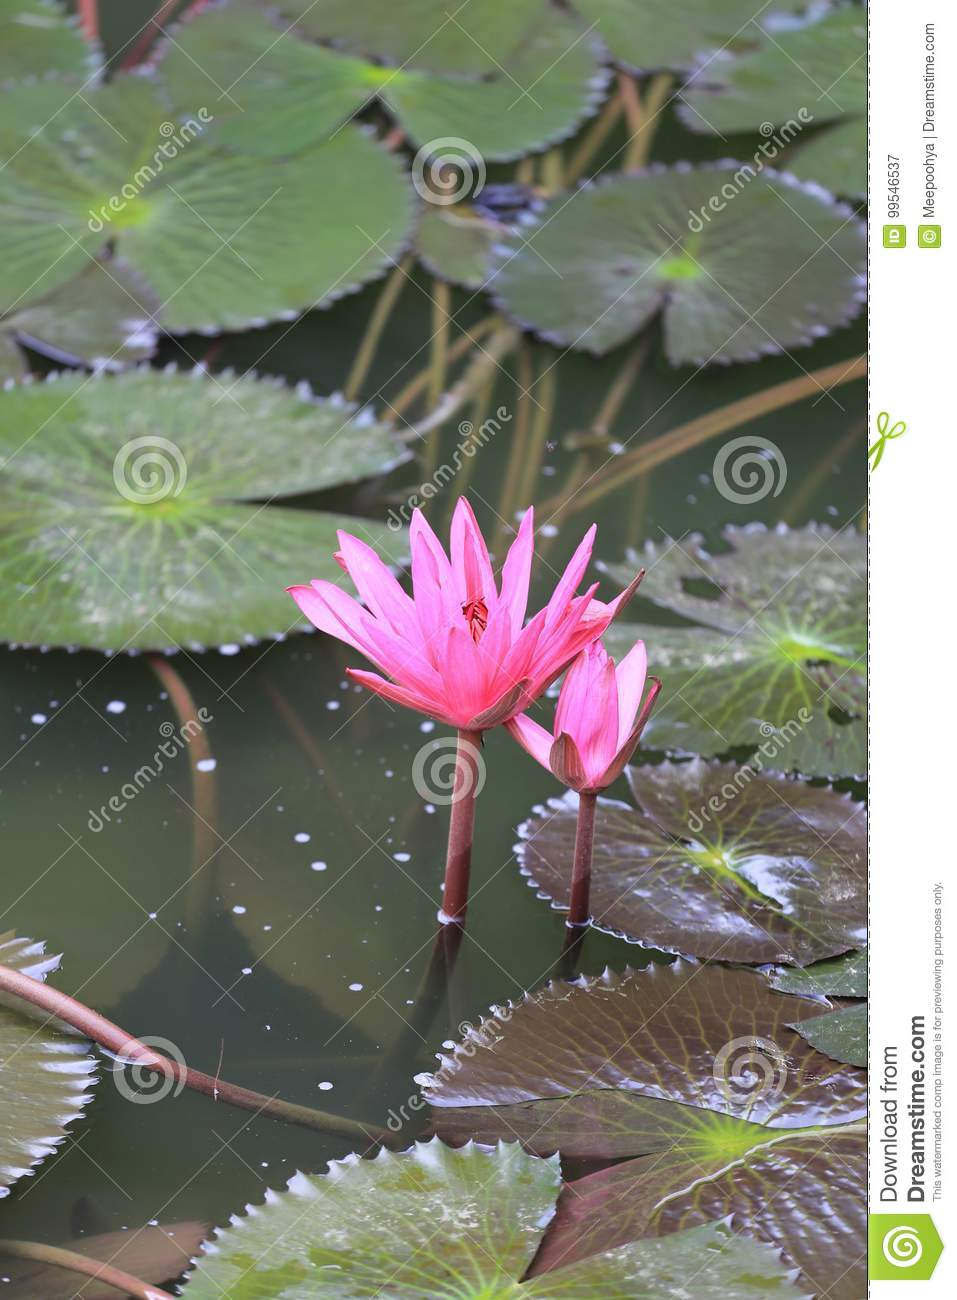 Pink Lotus Flower Bloom In Pondwater Lily In The Public Park Stock